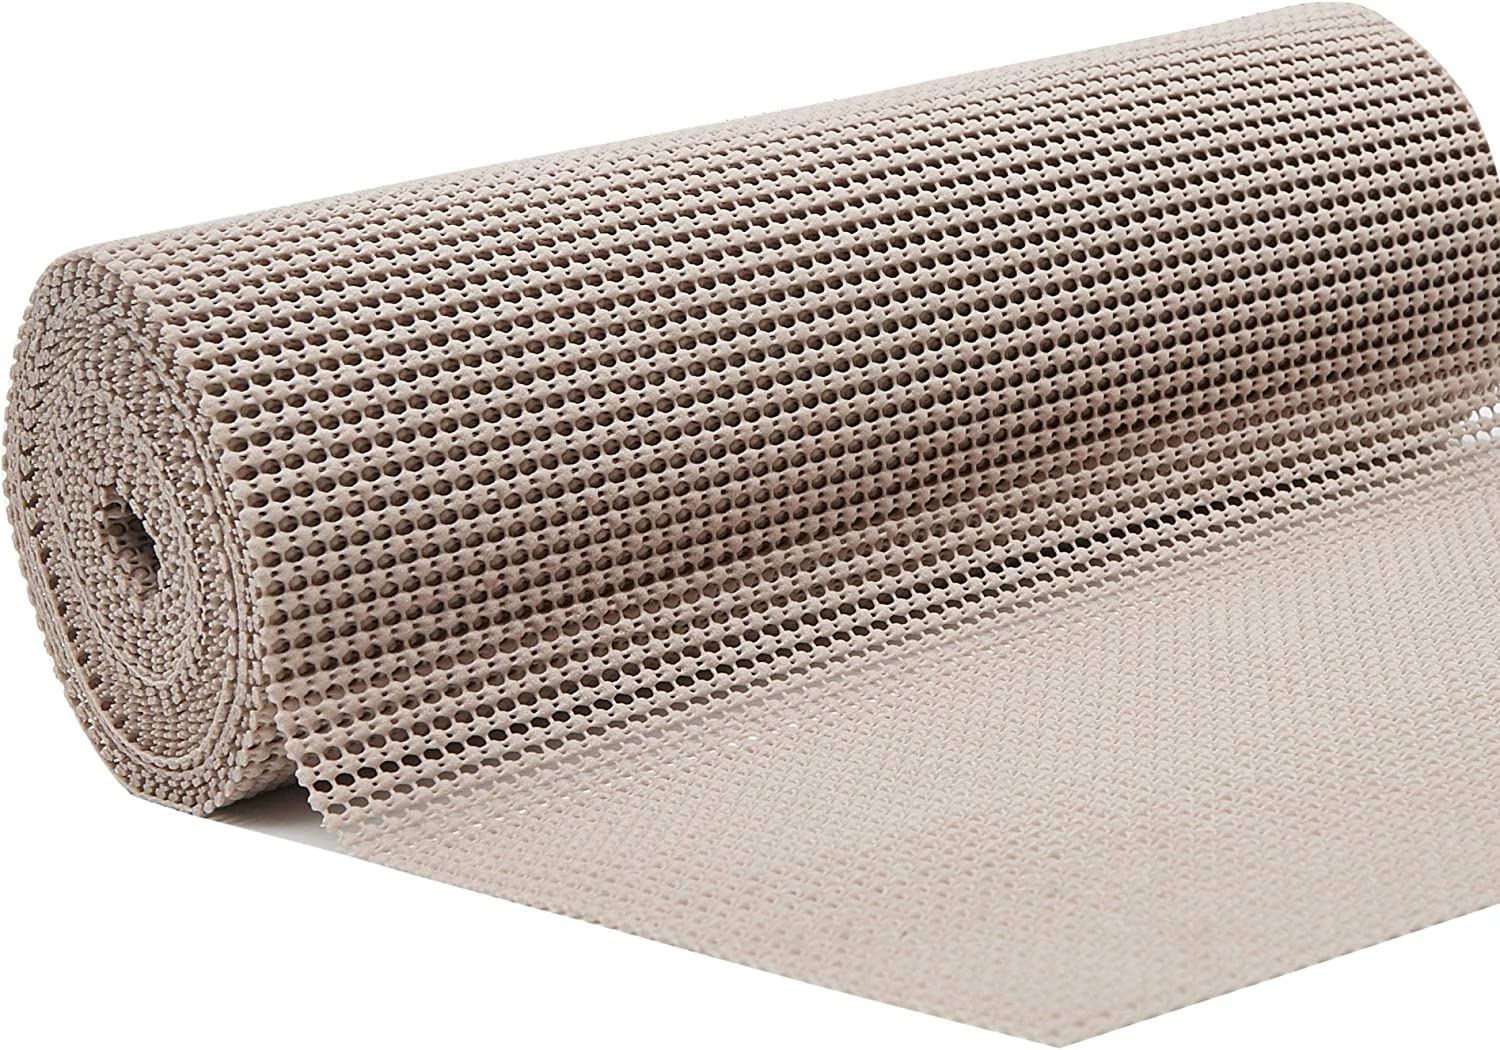 """DOLOPL Grip Shelf Liner Beige Shelf Liners Drawer and Shelf Liner Non Adhesive Durable Cuttable 12"""" x16' for Kitchen Cabinets,Shelves,Drawers,Suitcase,Refrigerator(Pack of 1)"""